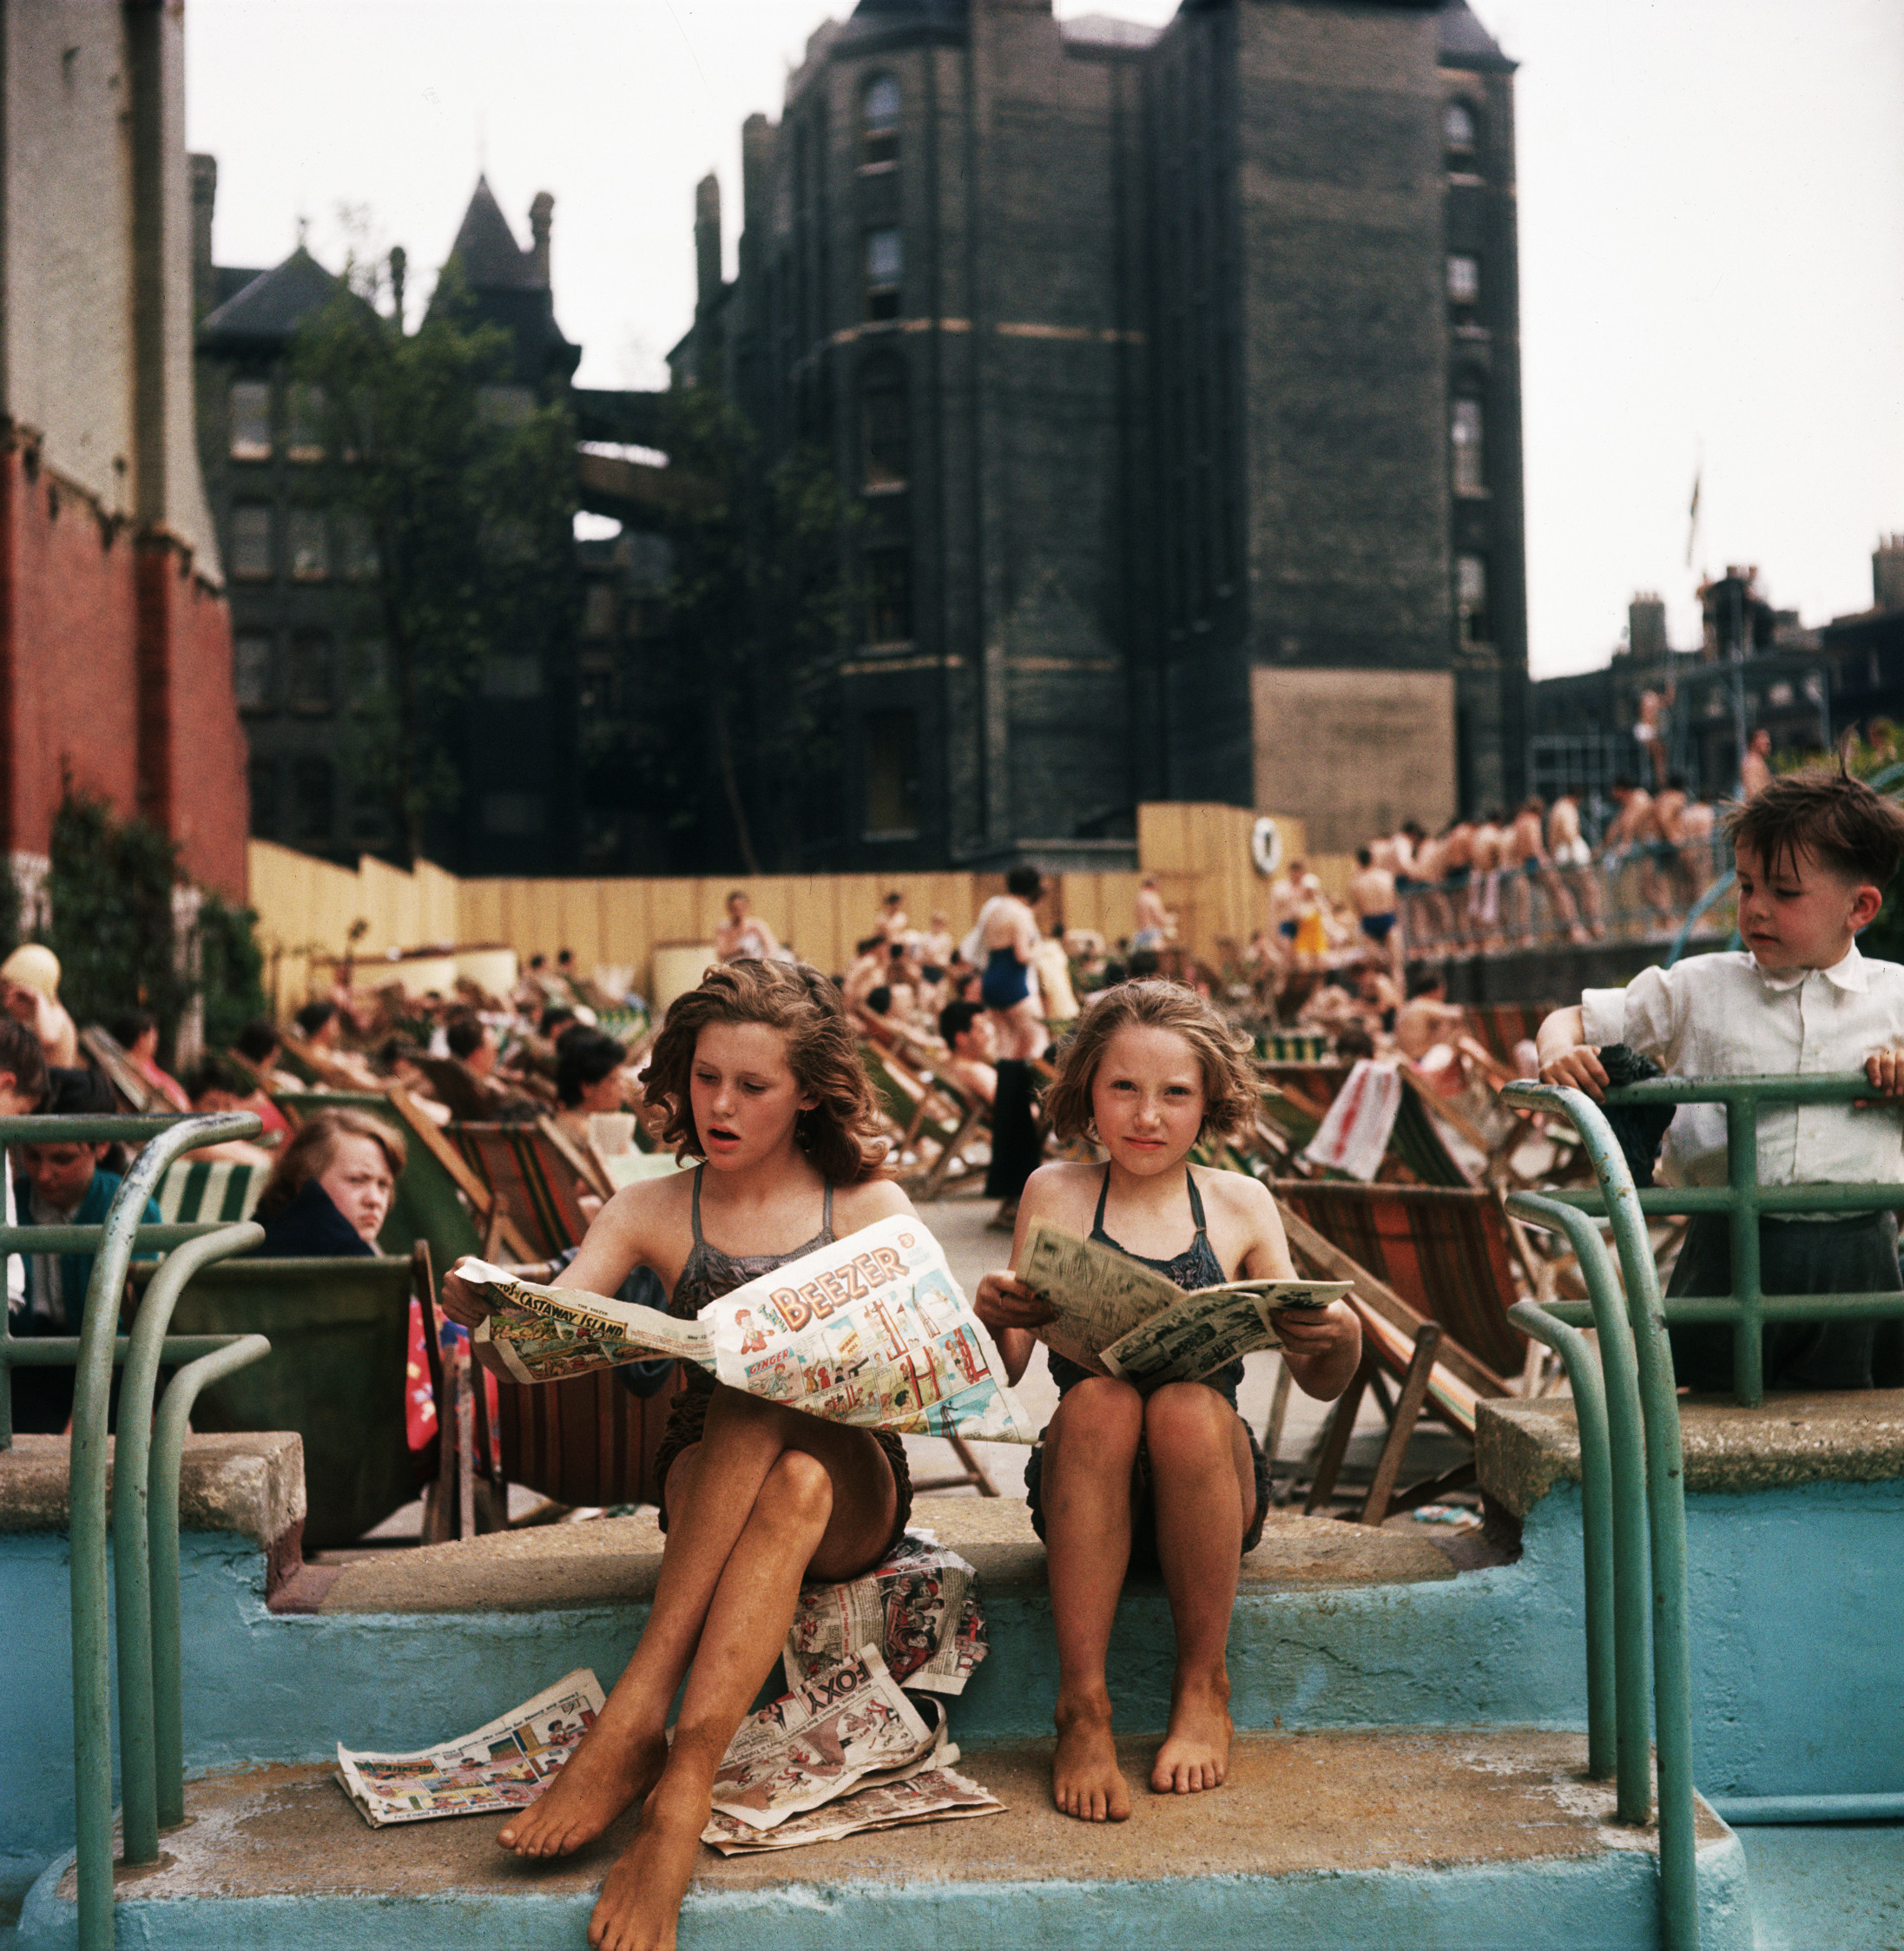 May 1956. Children sunbathing next to the old outdoor rooftop swimming pool at the Oasis Leisure Centre at High Holborn at the corner of Endell Street, Covent Garden. There have been baths and washhouses here since 1853.